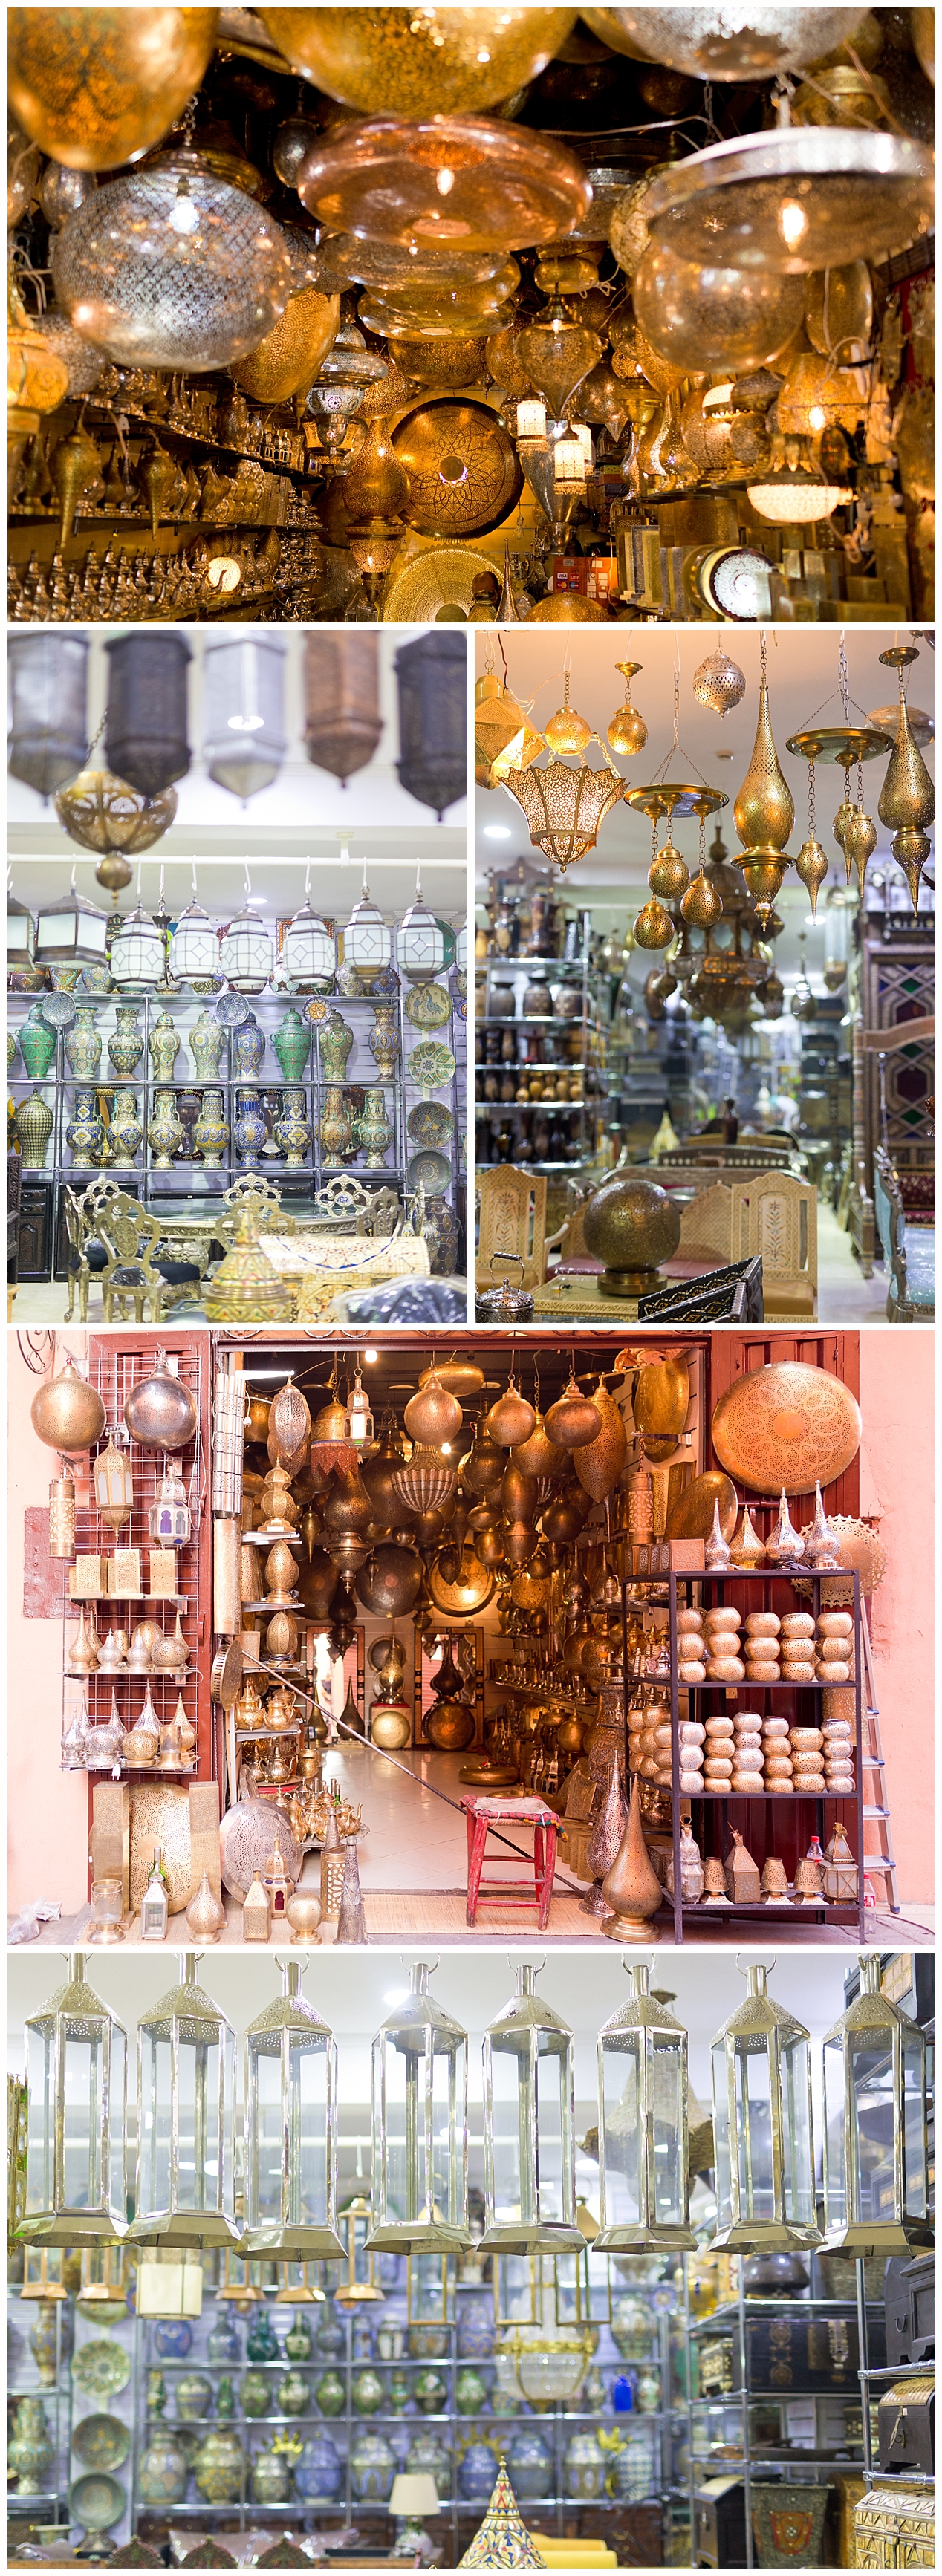 metal lanterns and lamps for sale in Marrakech, Morocco